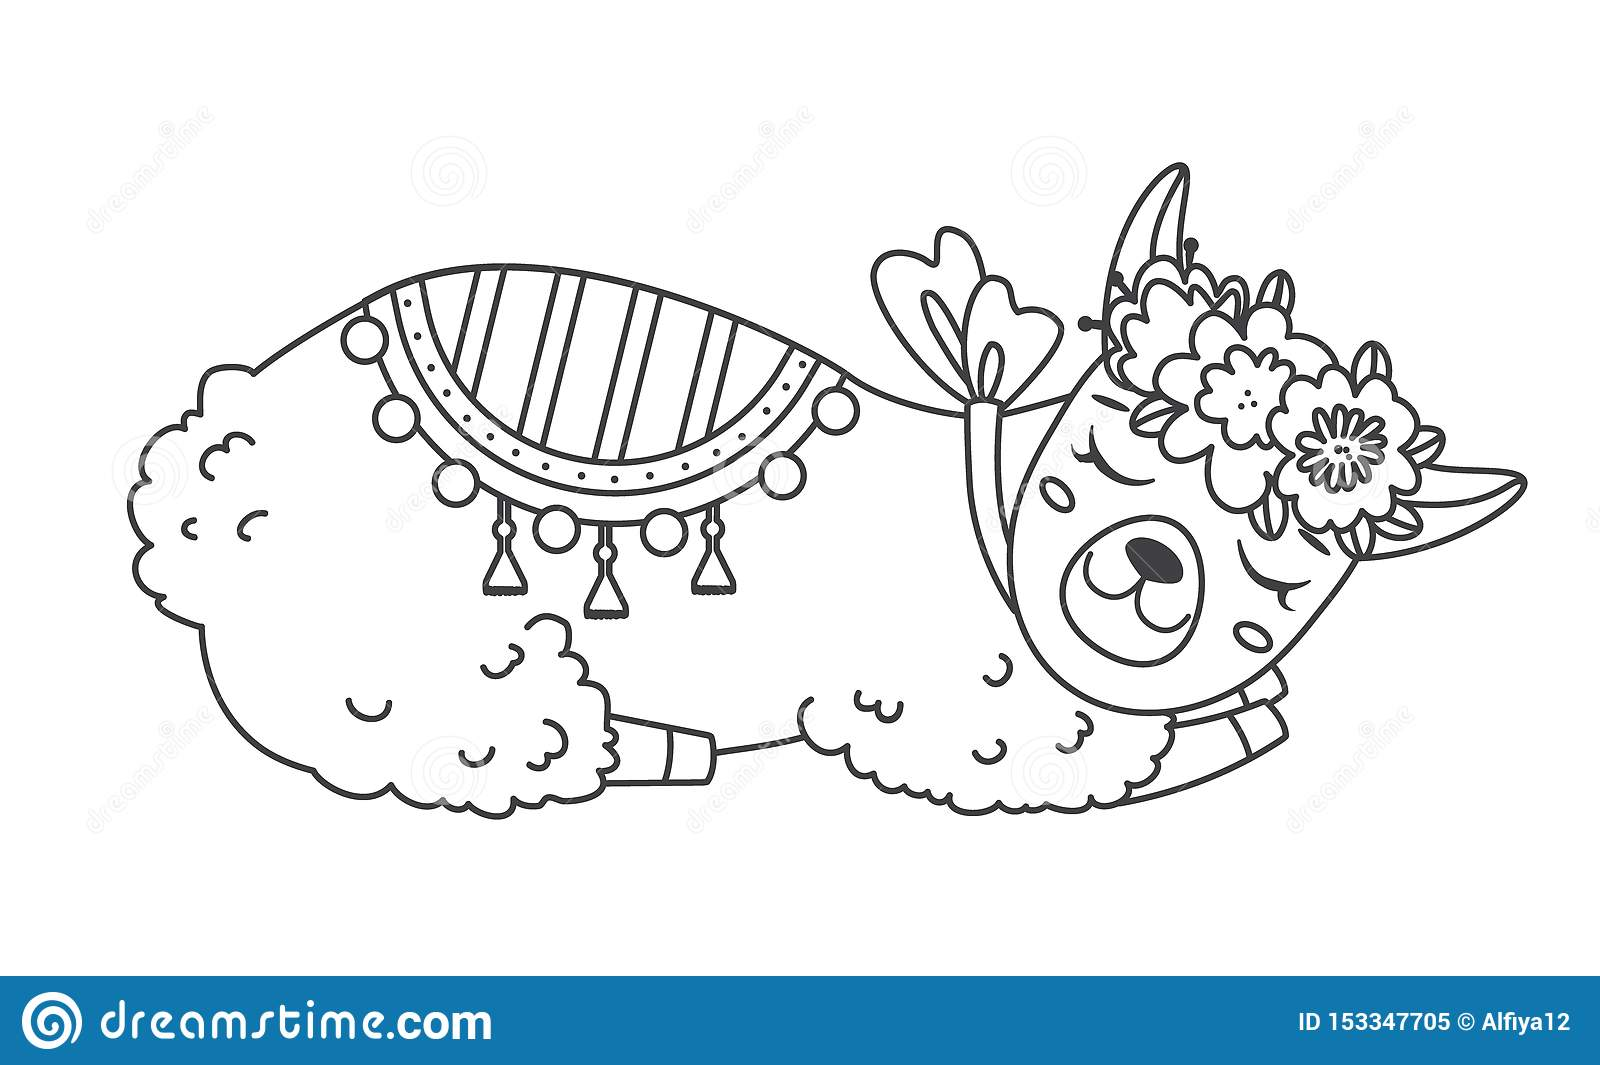 Cute Outline Doodle Sleeping Llama With Hand Drawn ...